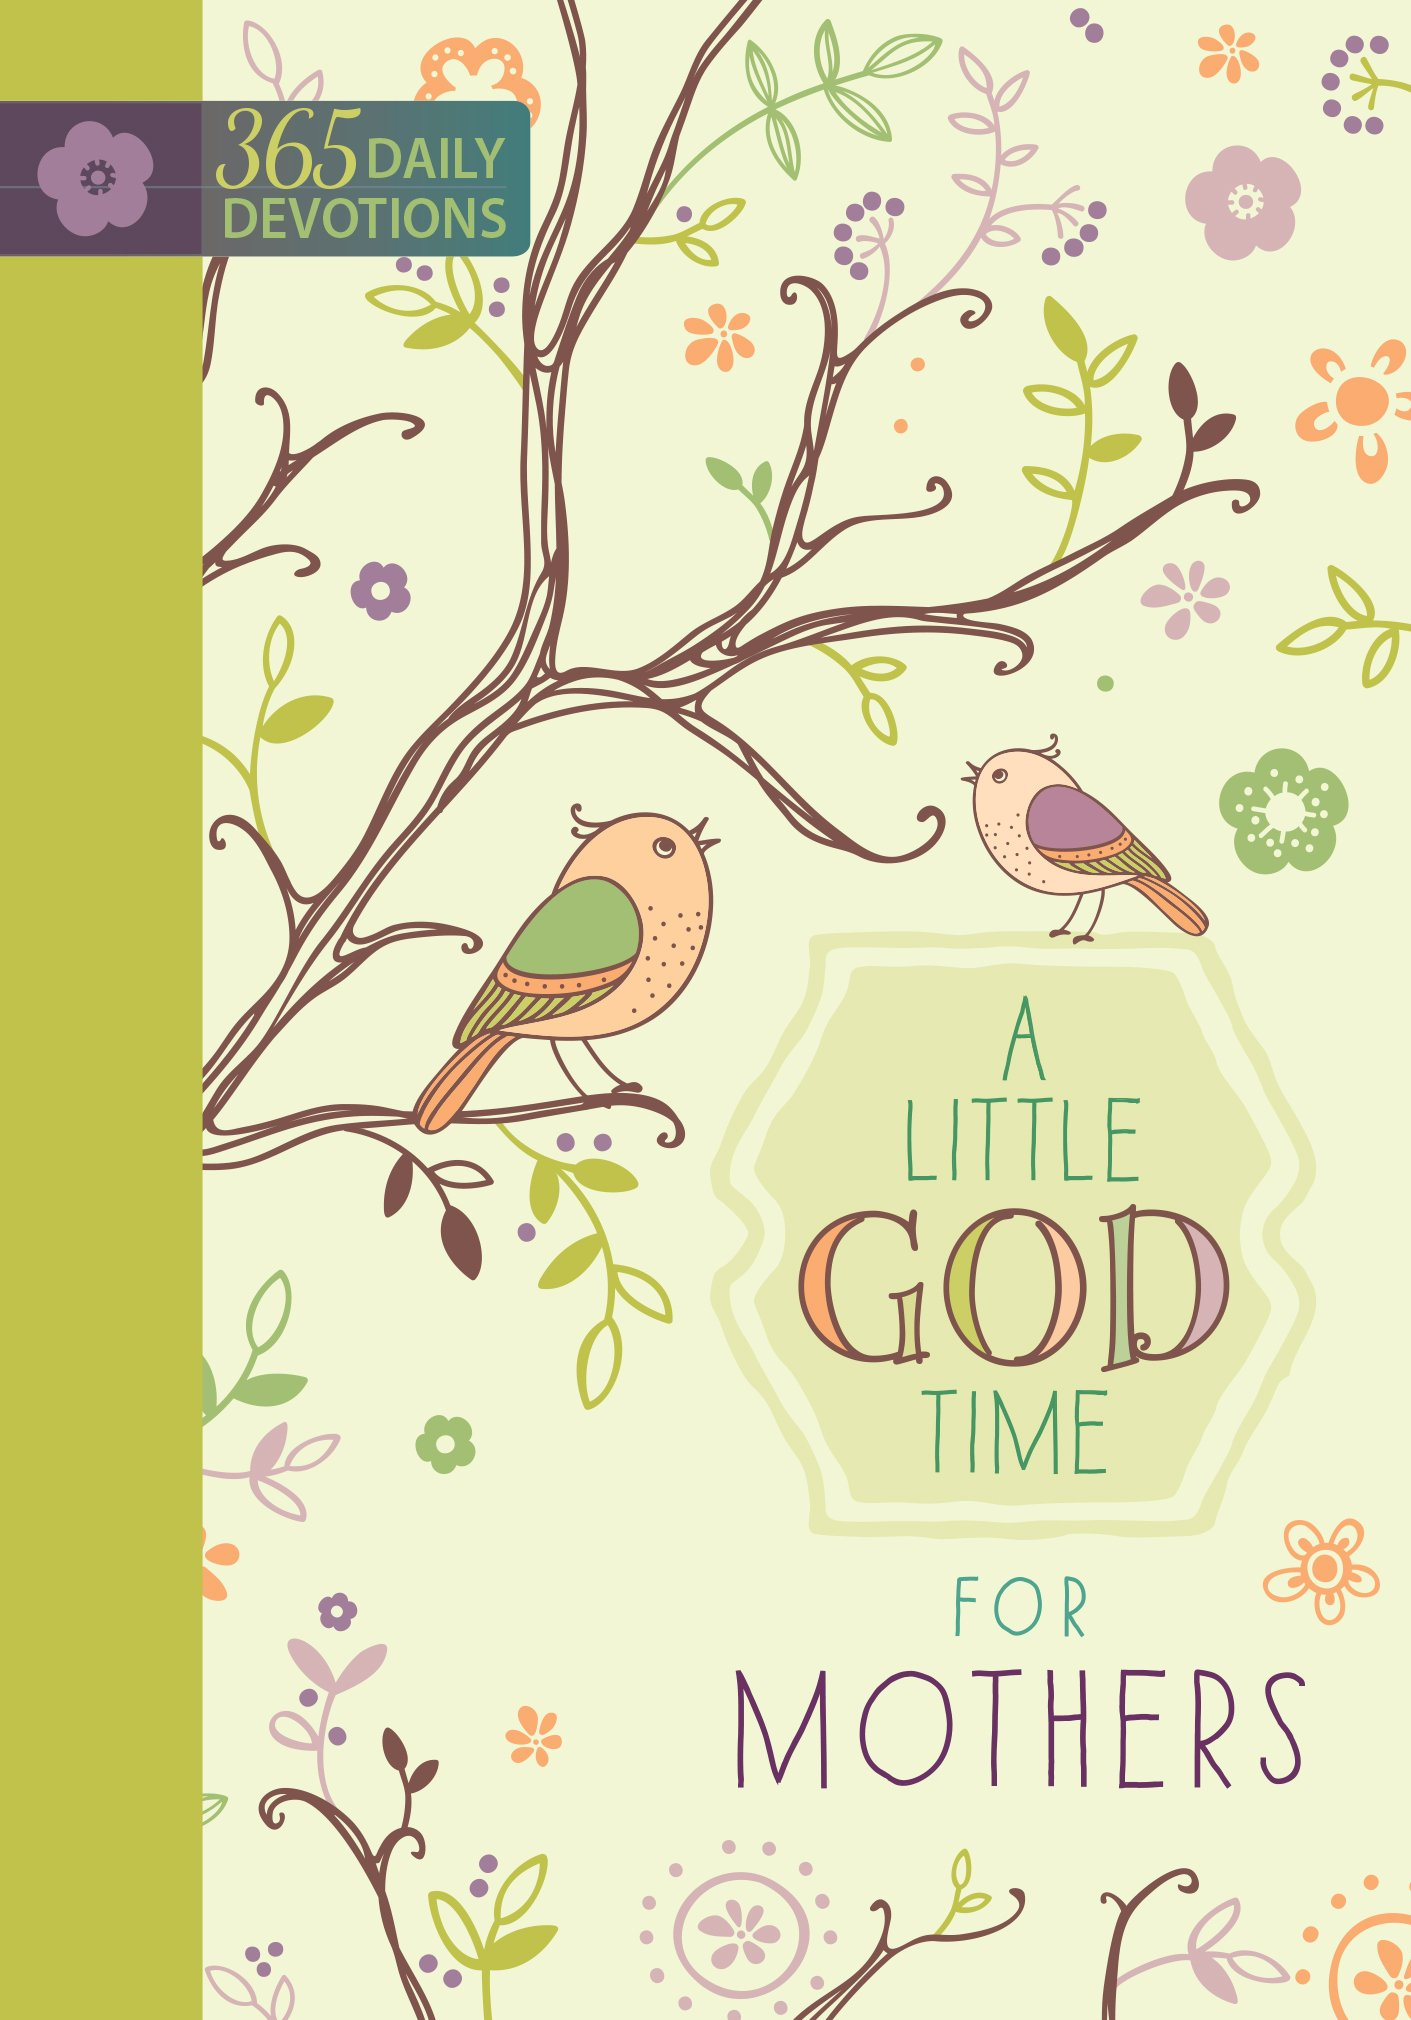 A Little God Time for Mothers: 365 Daily Devotions Hardcover – April 1, 2015